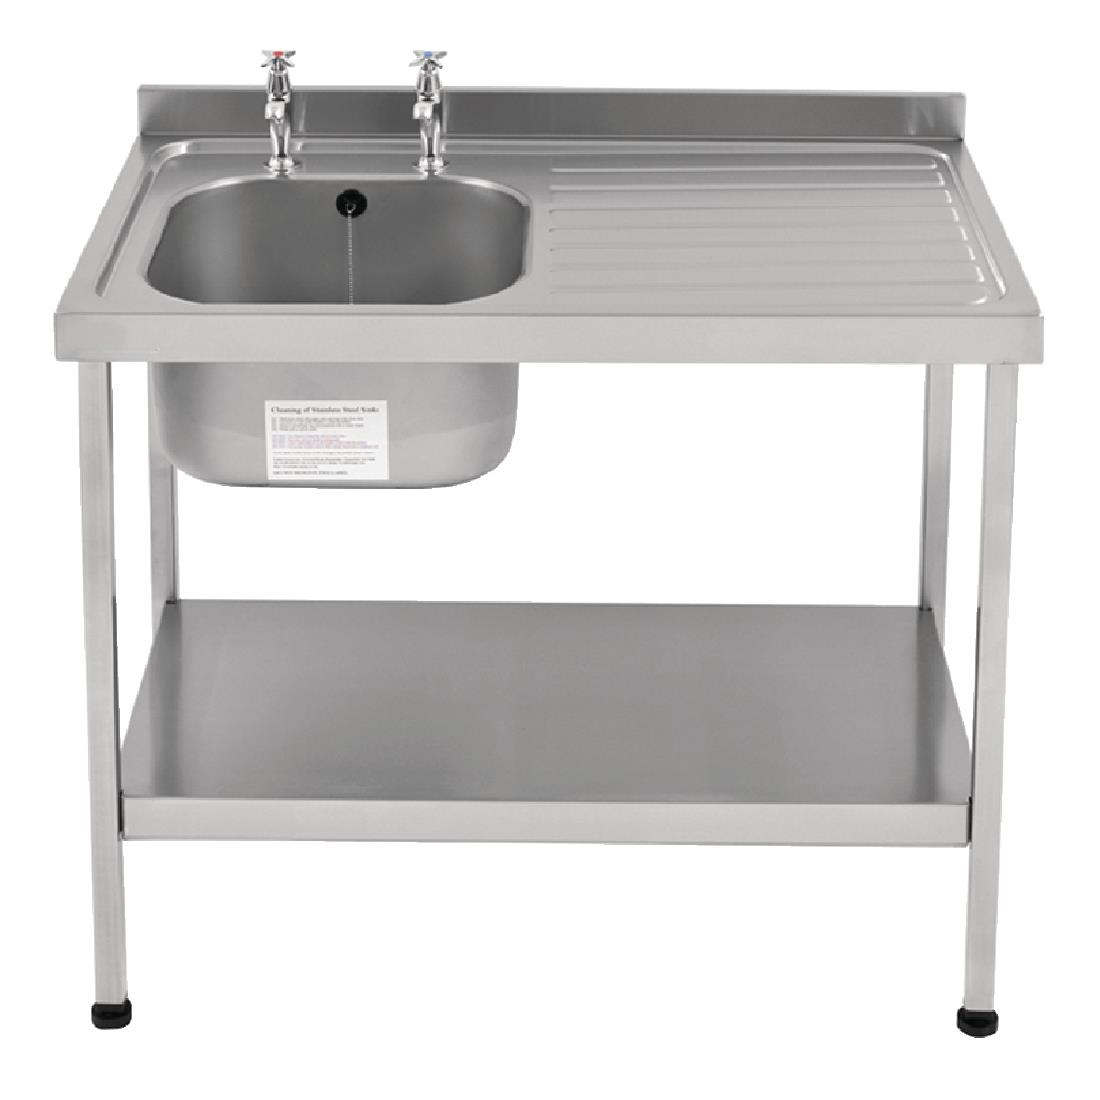 Image of Franke Sissons Self Assembly Stainless Steel Sink Right Hand Drainer 1000x600mm